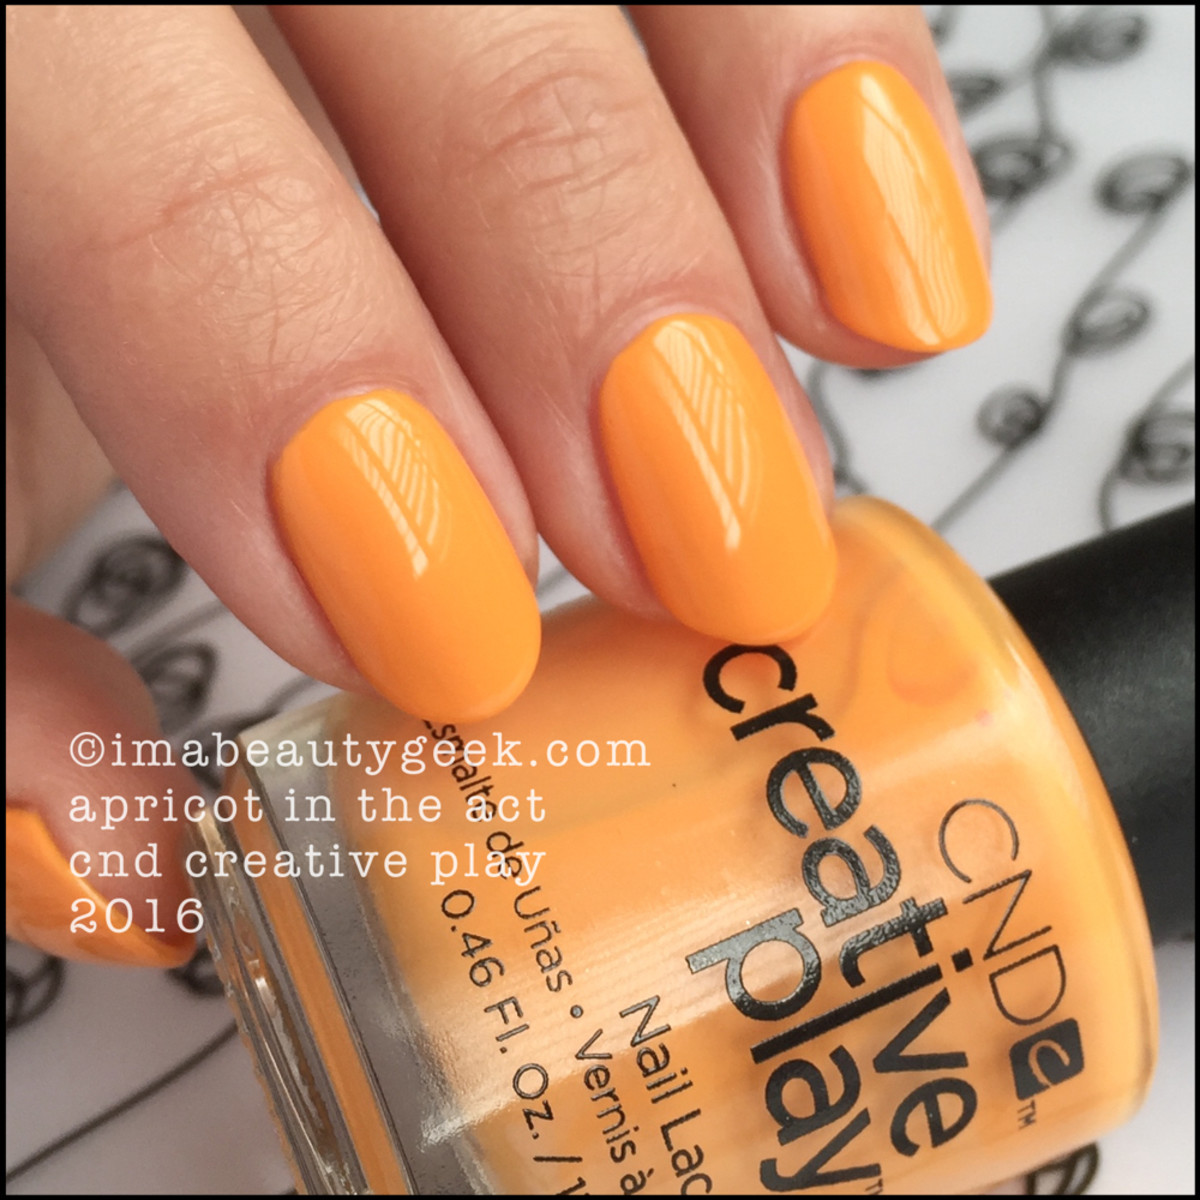 CND Creative Play Apricot In the Act_CND Creative Play Nail Polish Swatches